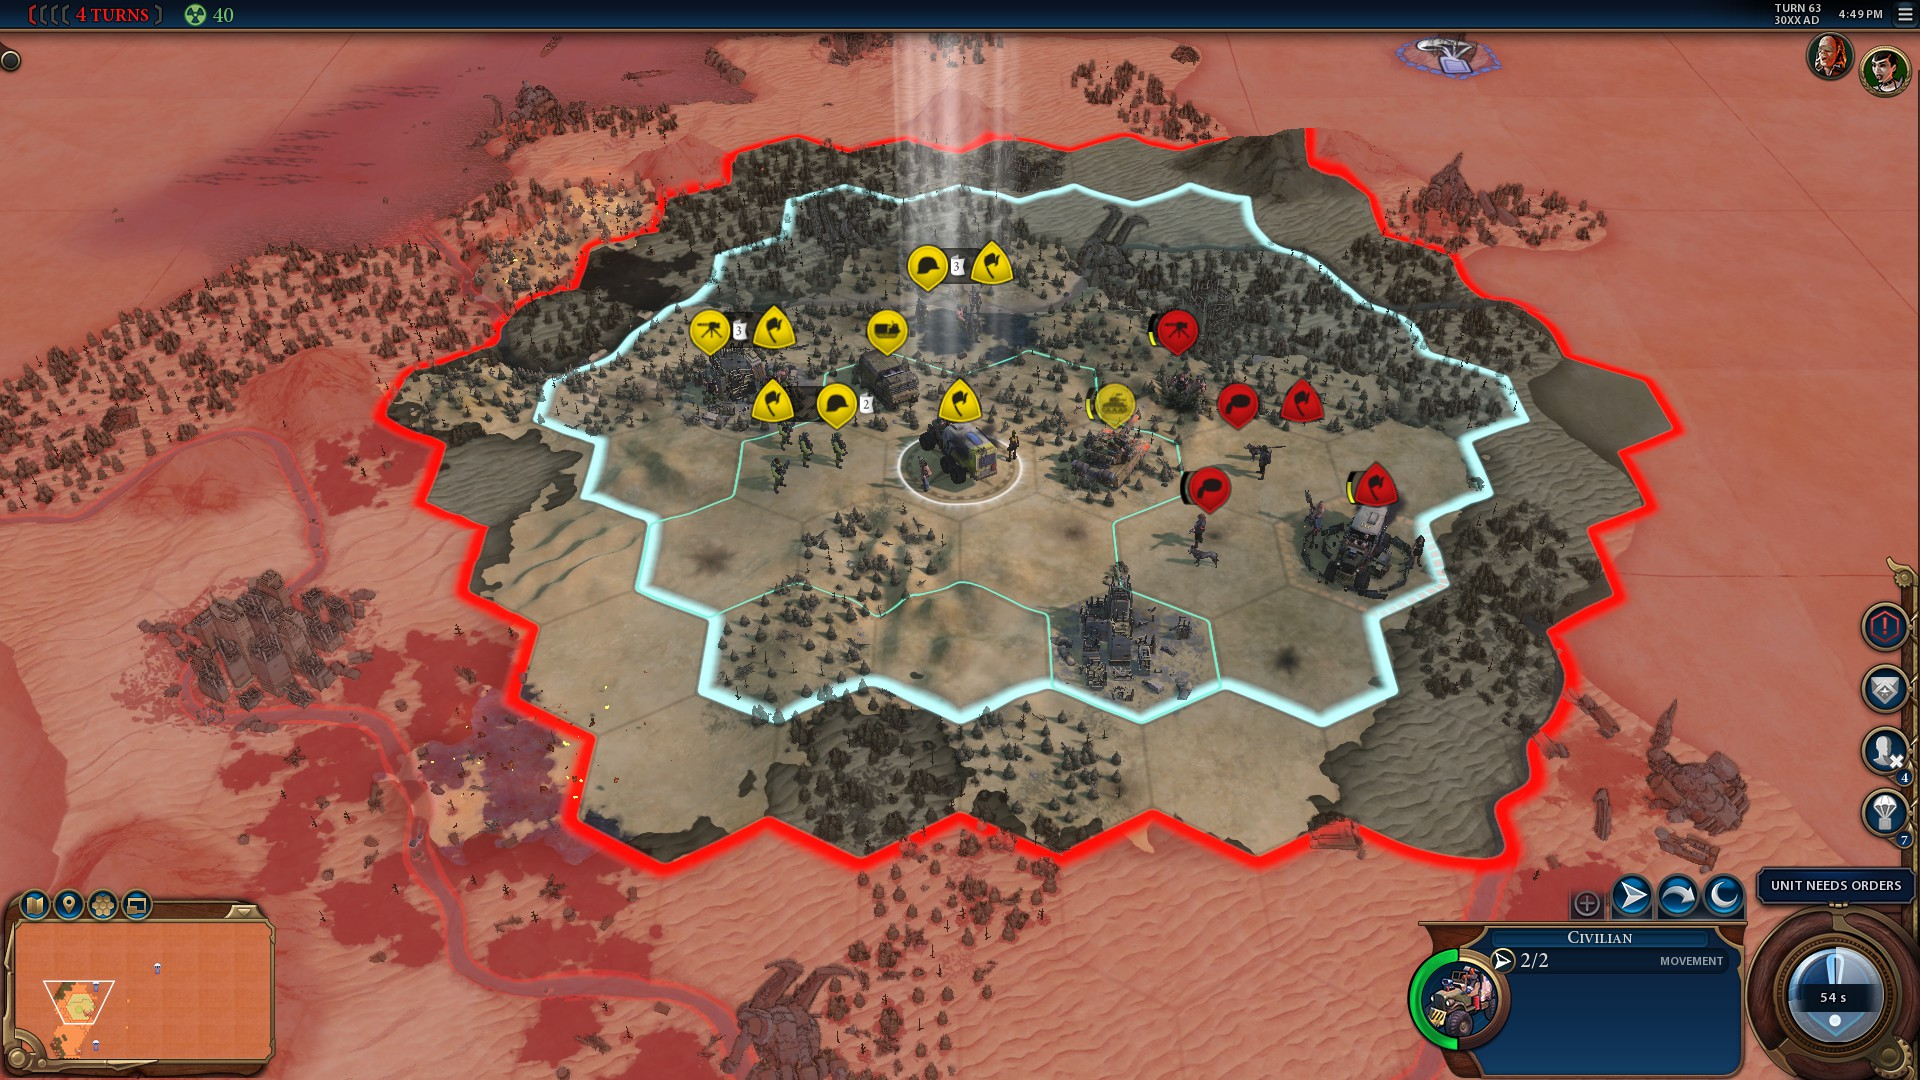 Civilization 6 battle royale ditches the civs and cities but keeps the nukes | PC Gamer